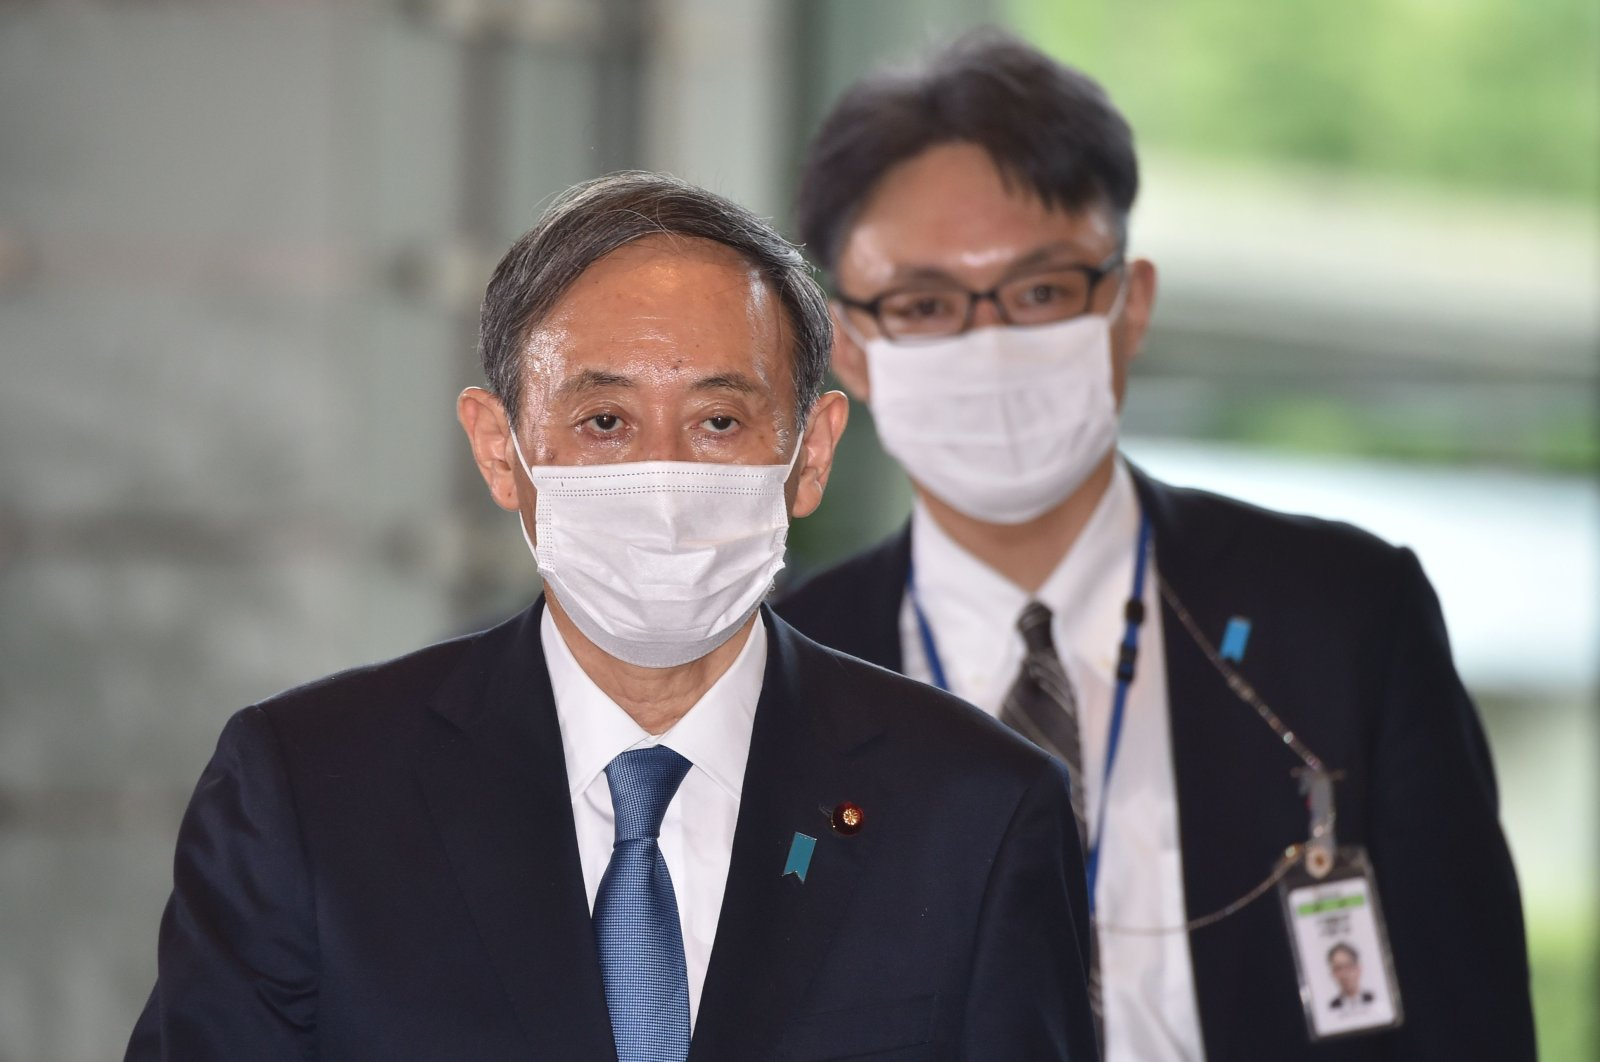 Japan's new Prime Minister Yoshihide Suga (L) arrives at his office in Tokyo, Sept. 16, 2020. (AFP Photo)